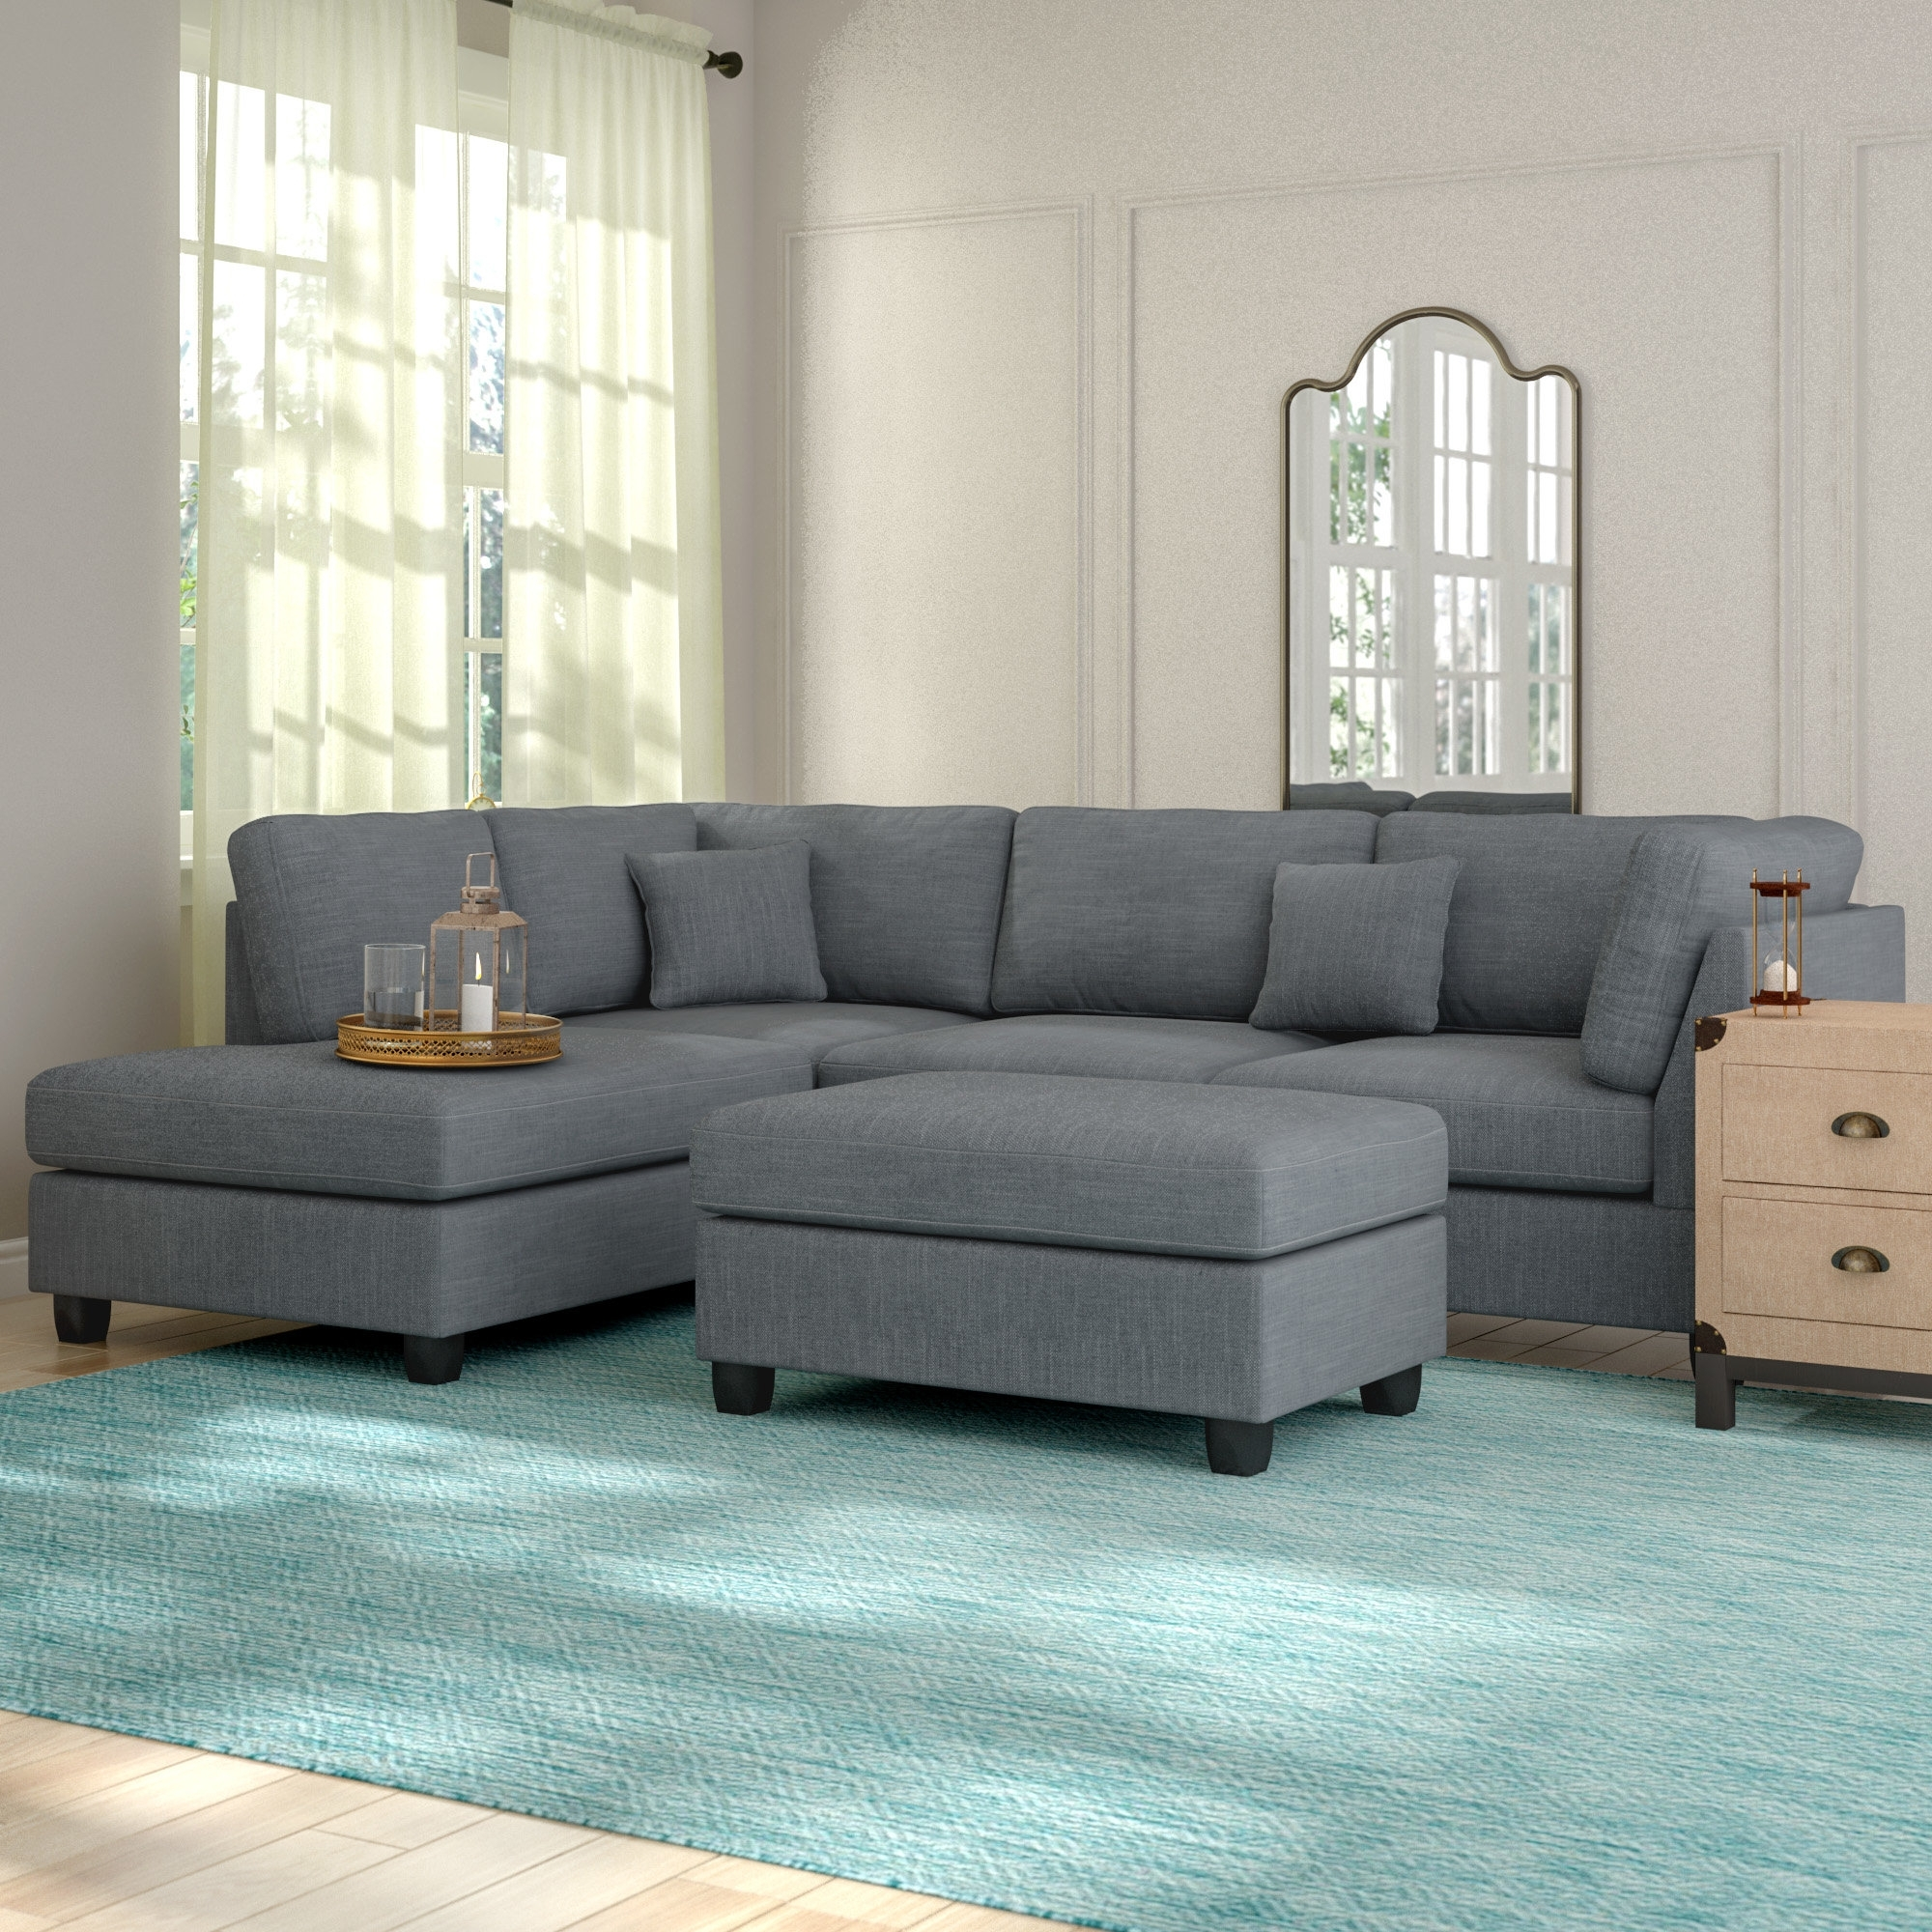 Grey Sectionals You'll Love | Wayfair inside Norfolk Grey 3 Piece Sectionals With Laf Chaise (Image 14 of 30)